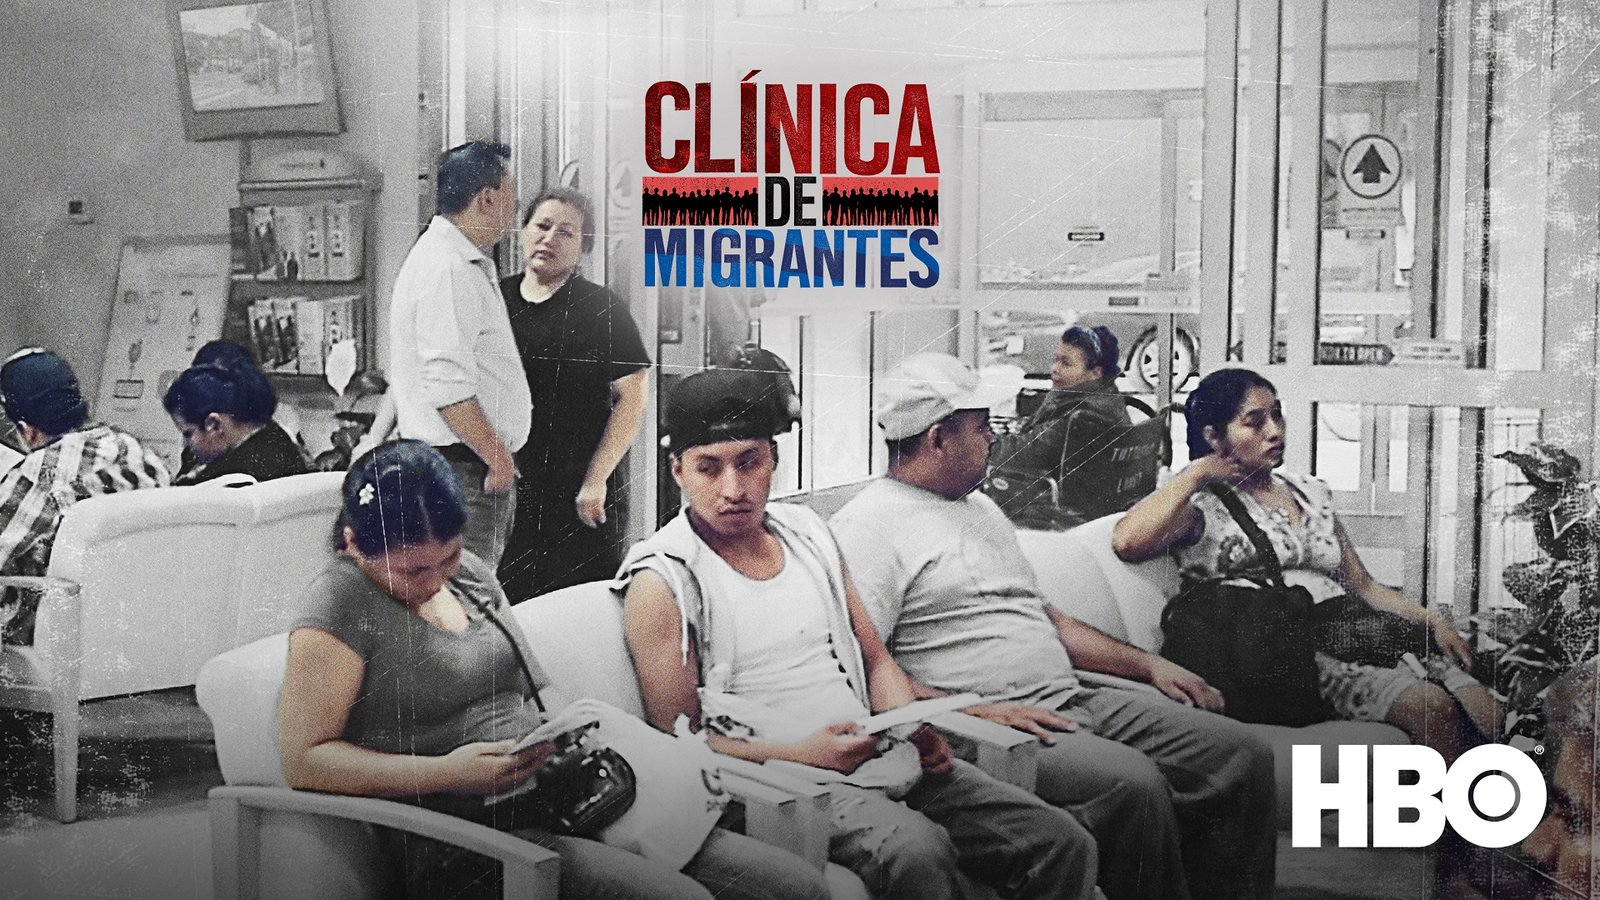 Clinica De Migrantes - A Volunteer-Run Health Clinic Treating Undocumented and Uninsured Immigrants